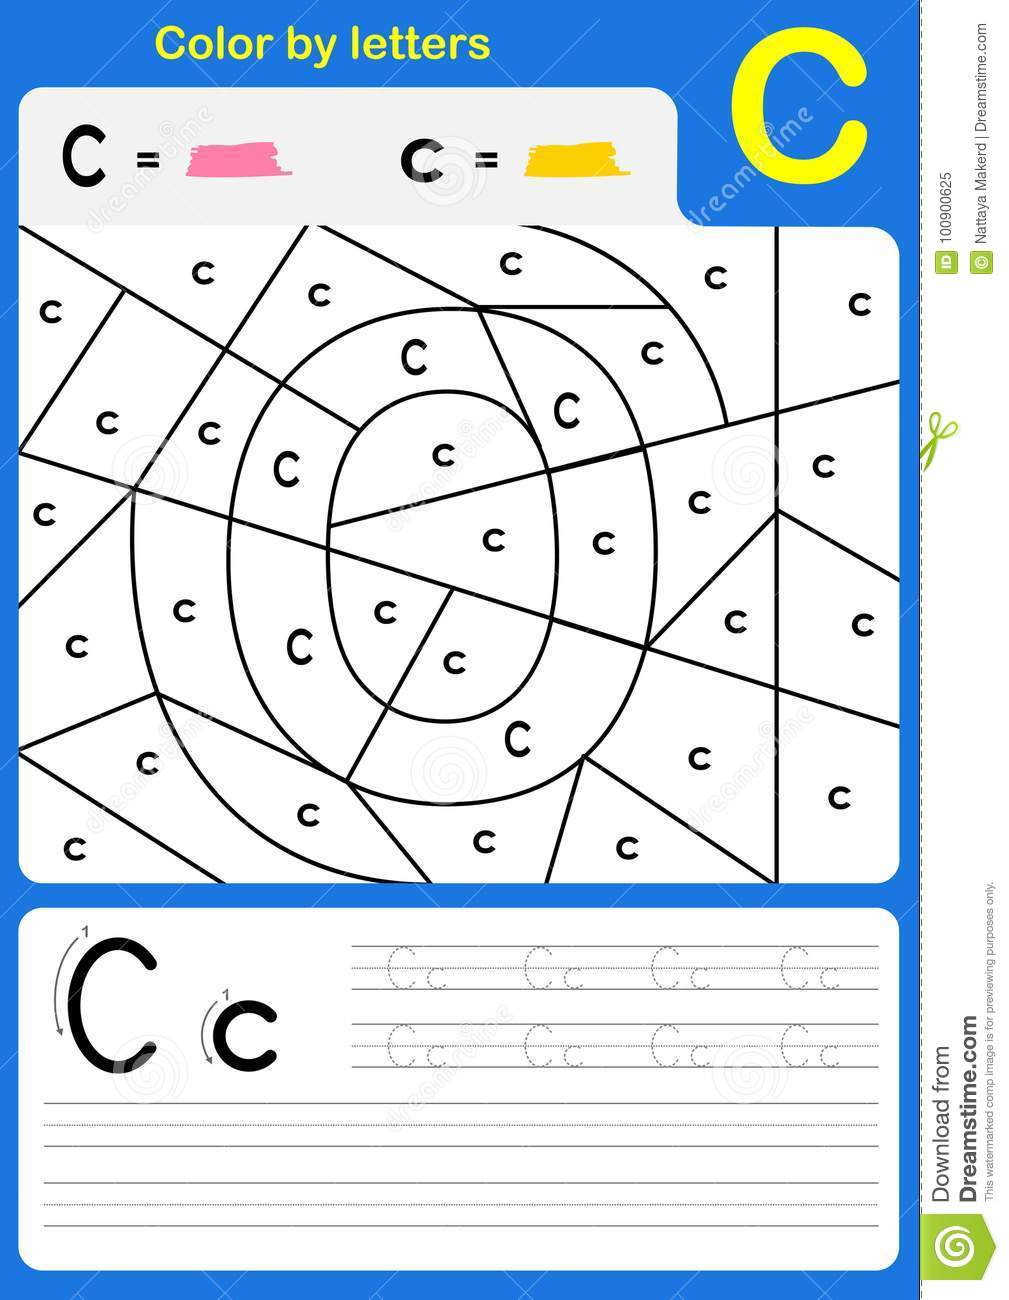 Color by letter alphabet worksheet - Color and Writing